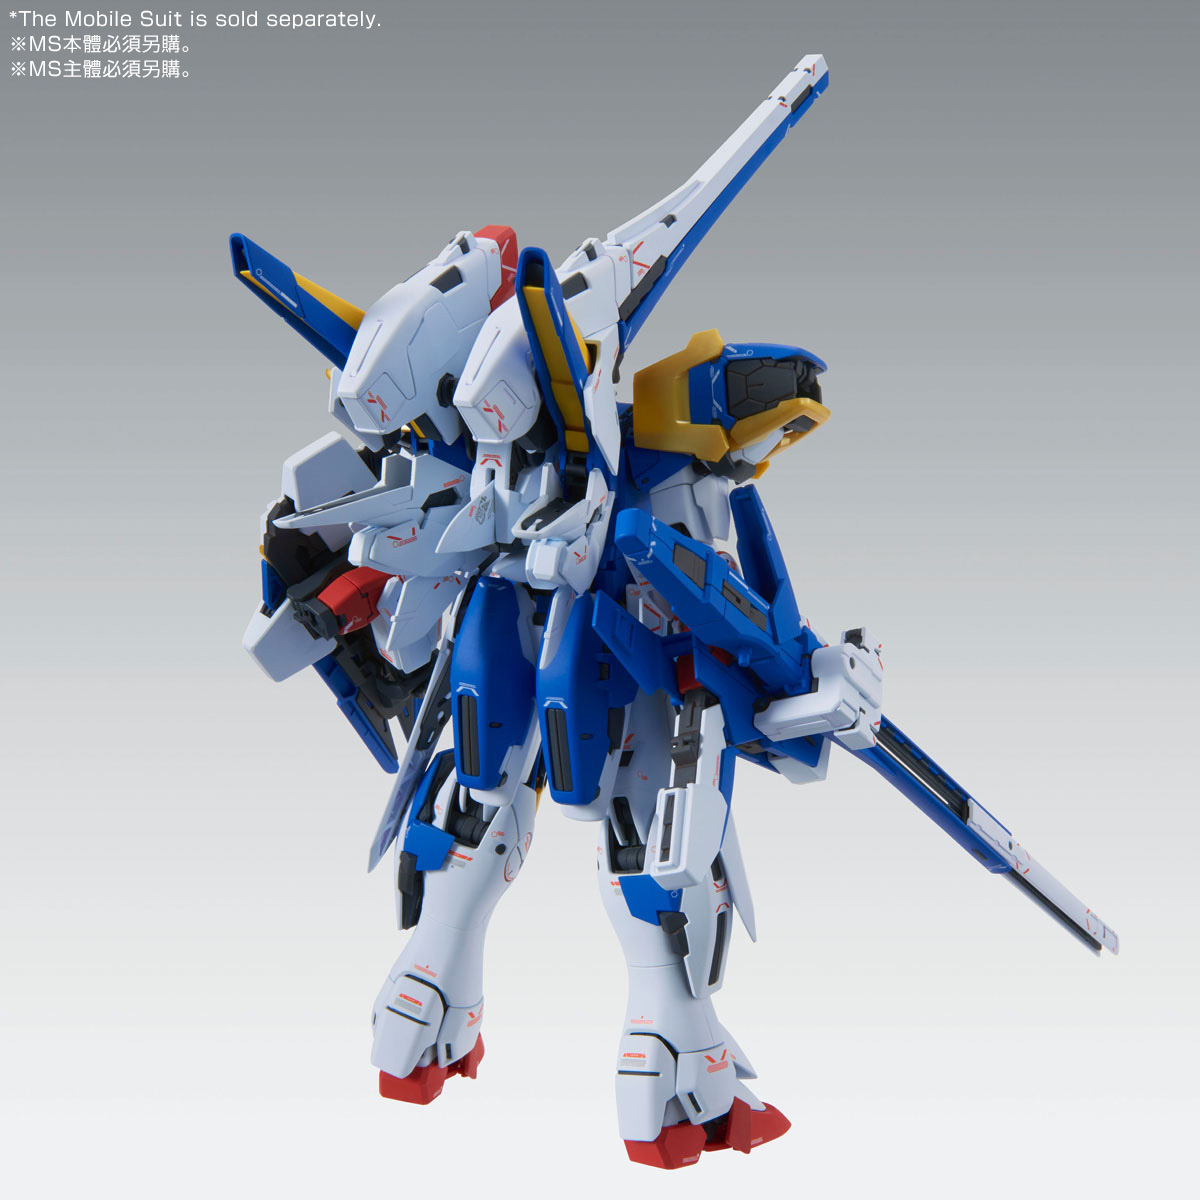 MG 1/100 ASSAULT BUSTER EXPANSION PARTS for VICTORY TWO GUNDAM Ver.Ka [March 2019 Delivery]